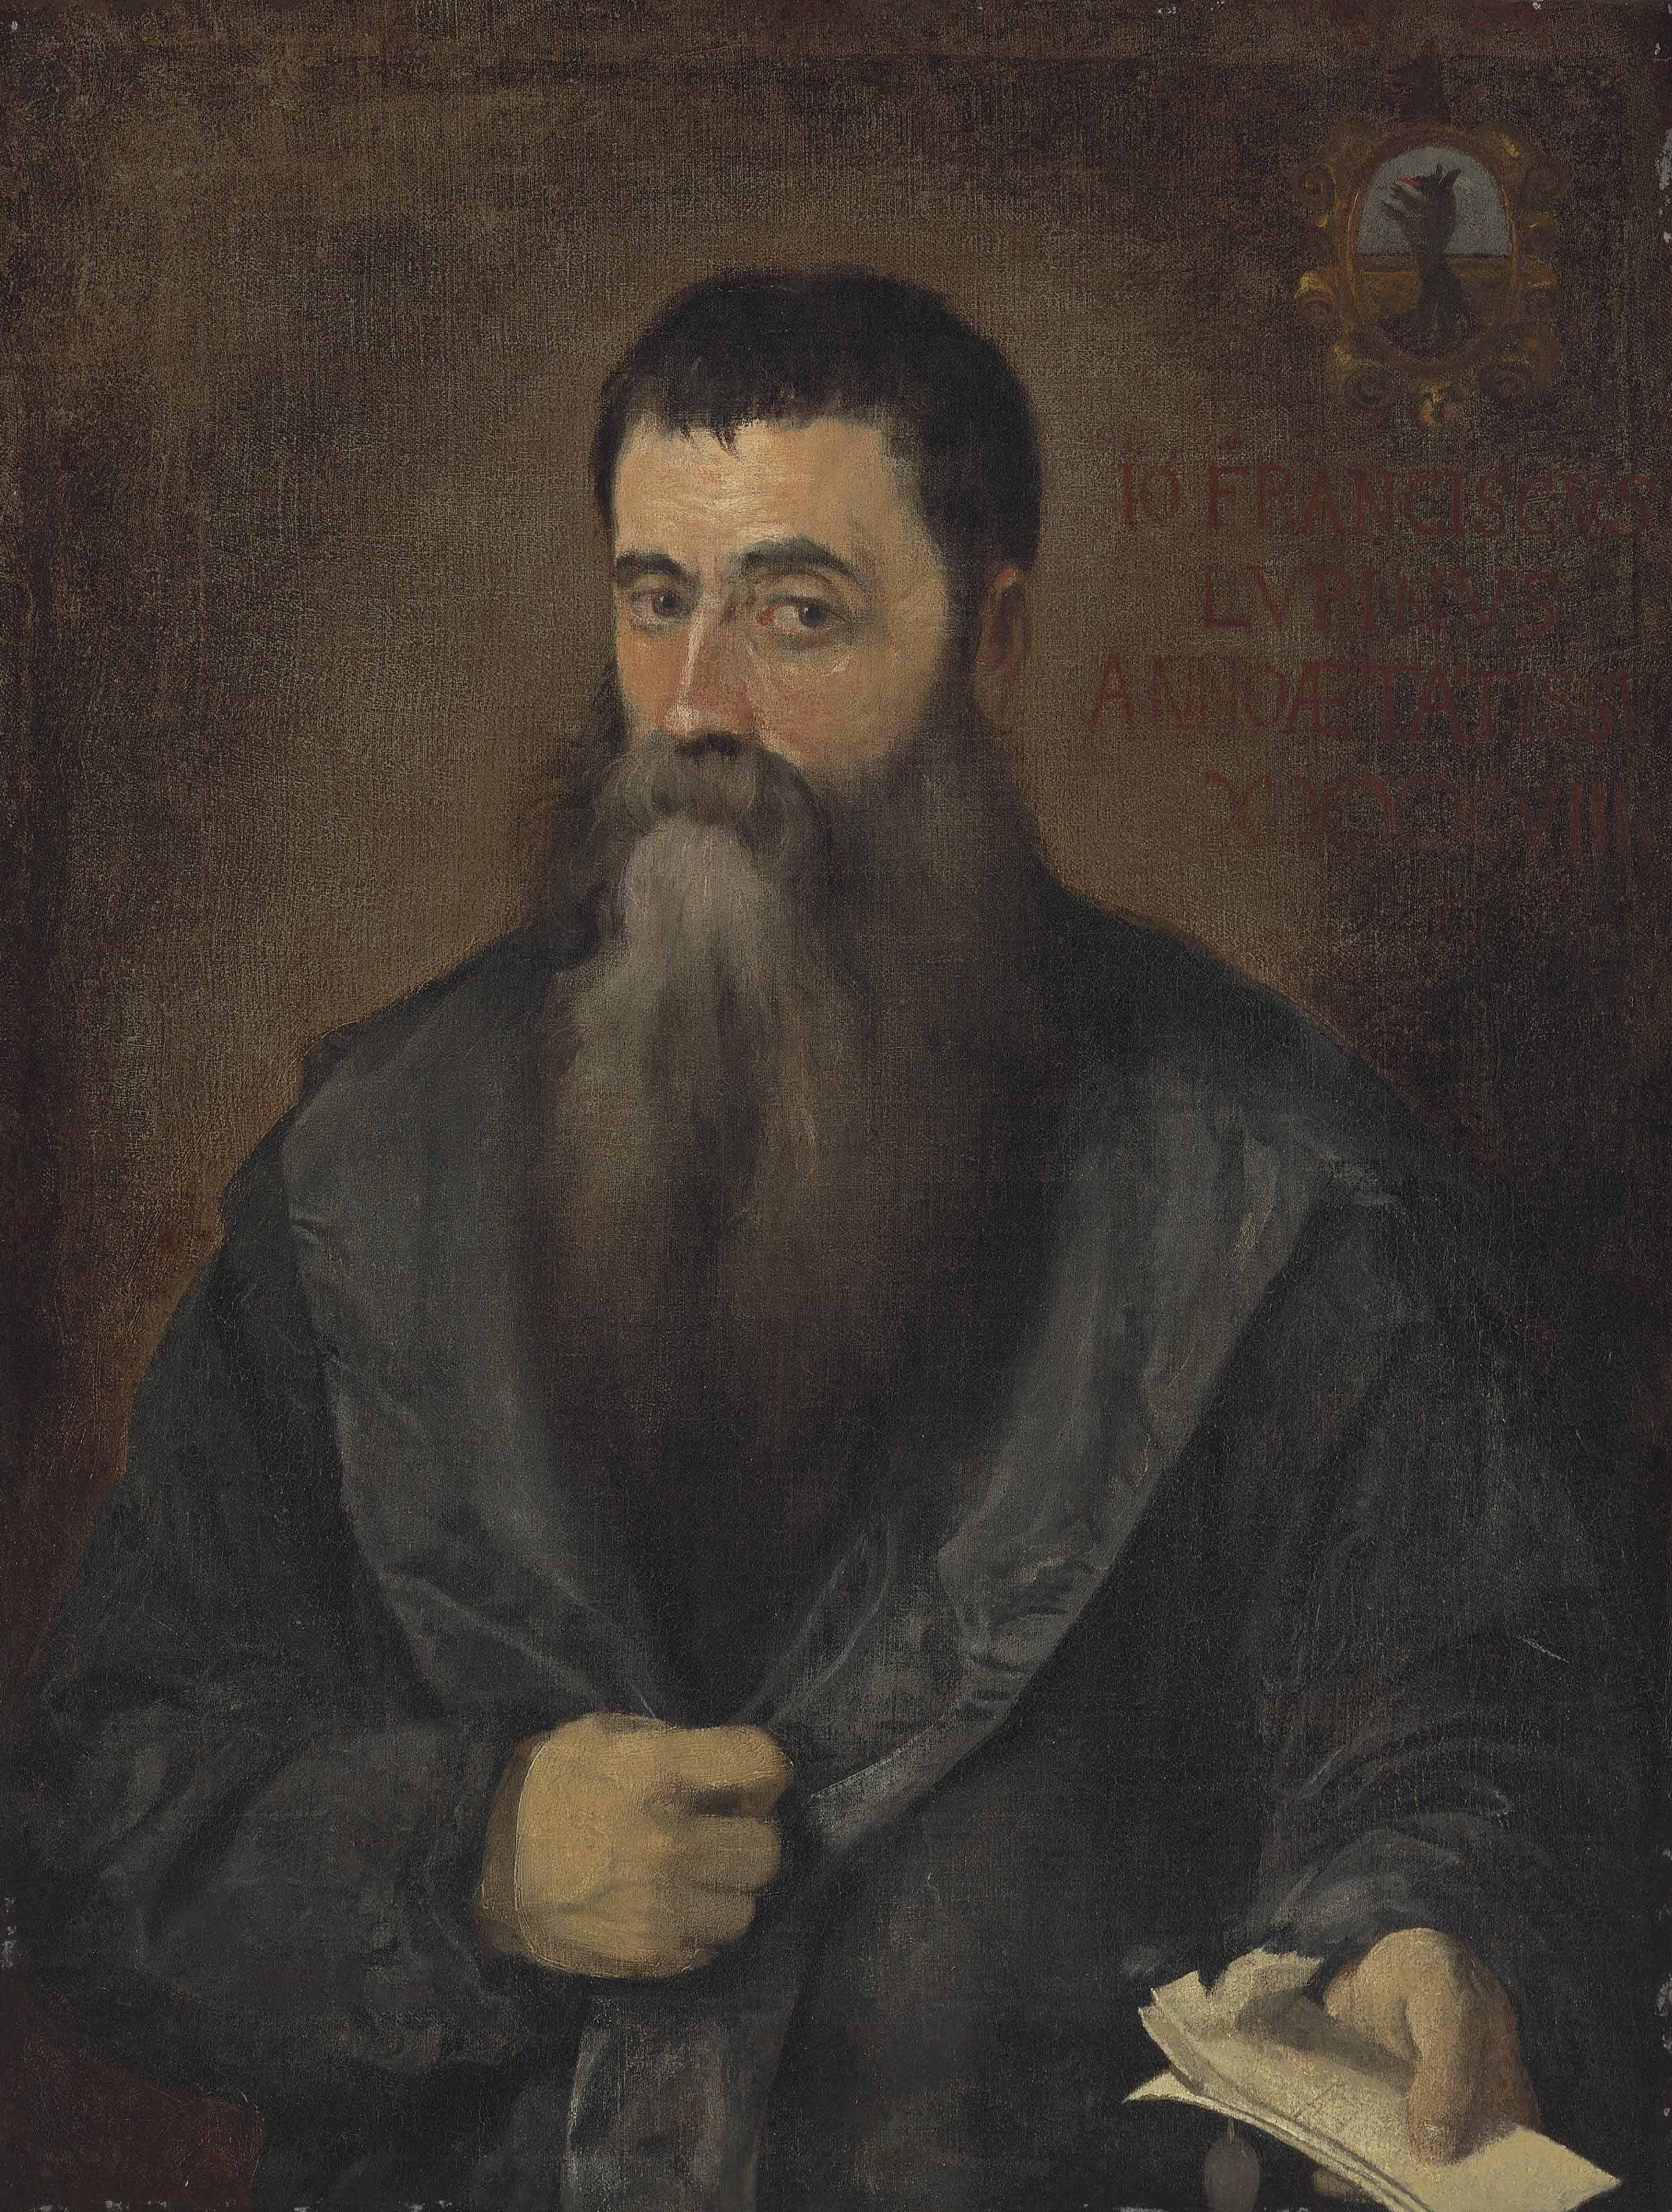 Portrait of Francisco Lupini, half-length, holding papers